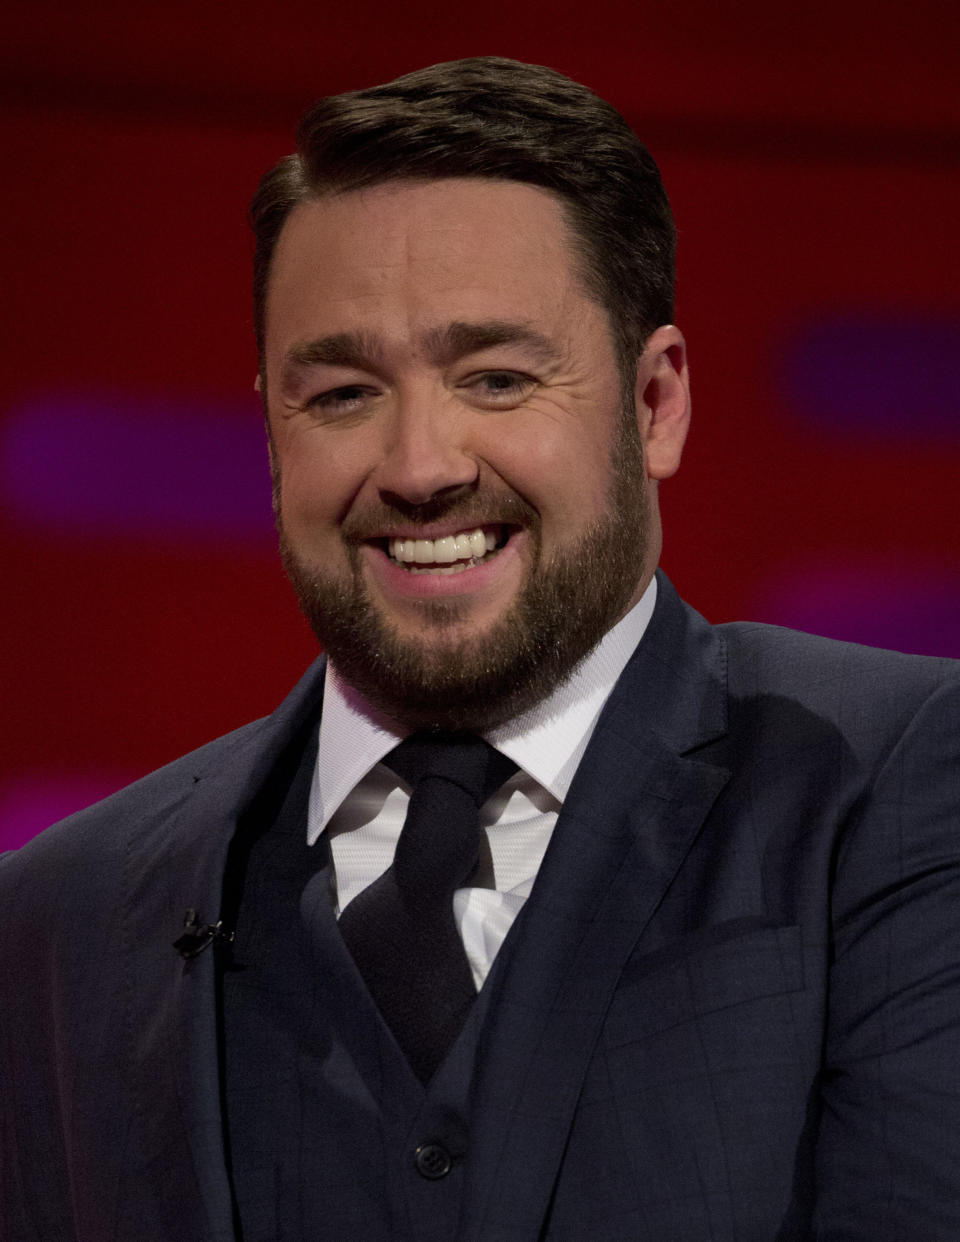 Jason Manford during the filming of the Graham Norton Show at The London Studios, to be aired on BBC One on Friday.